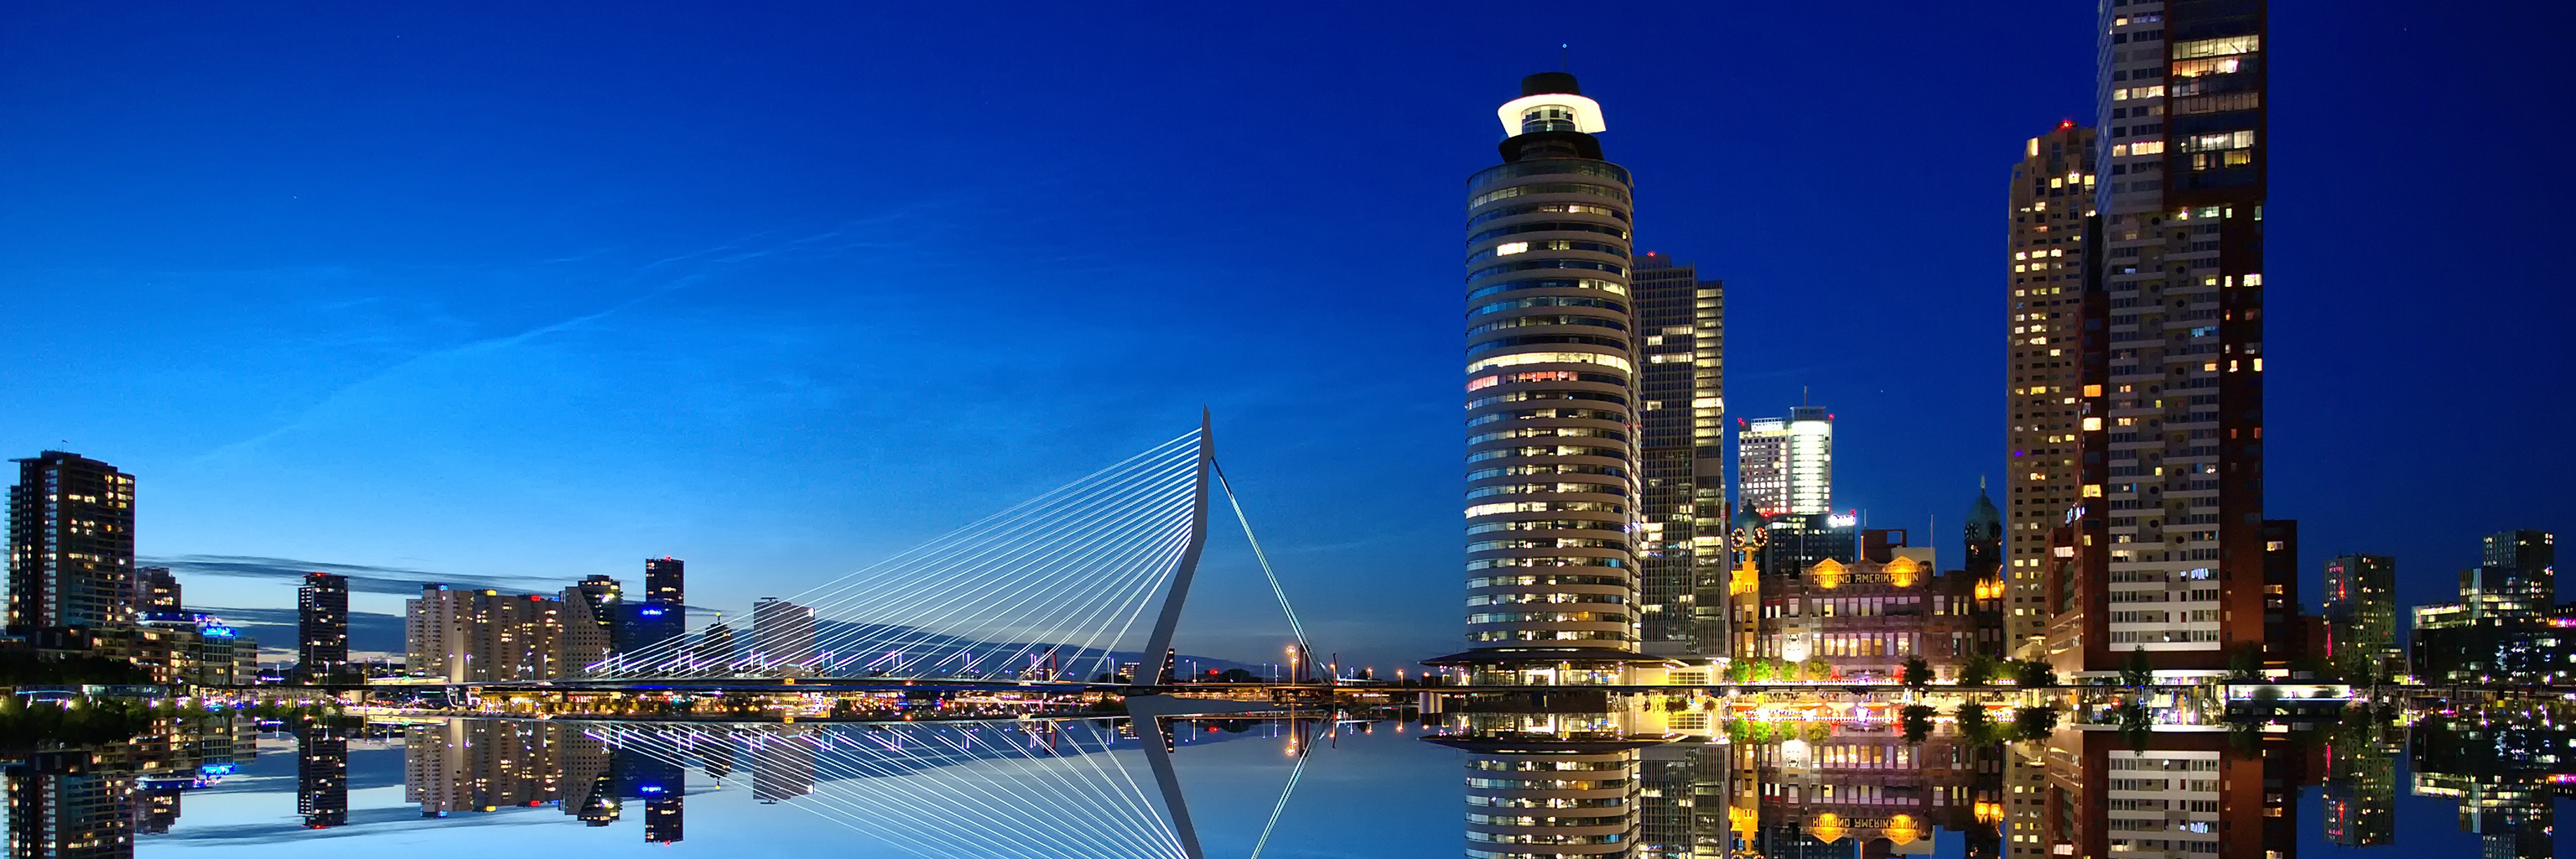 Rotterdam city skyline in the Netherlands.